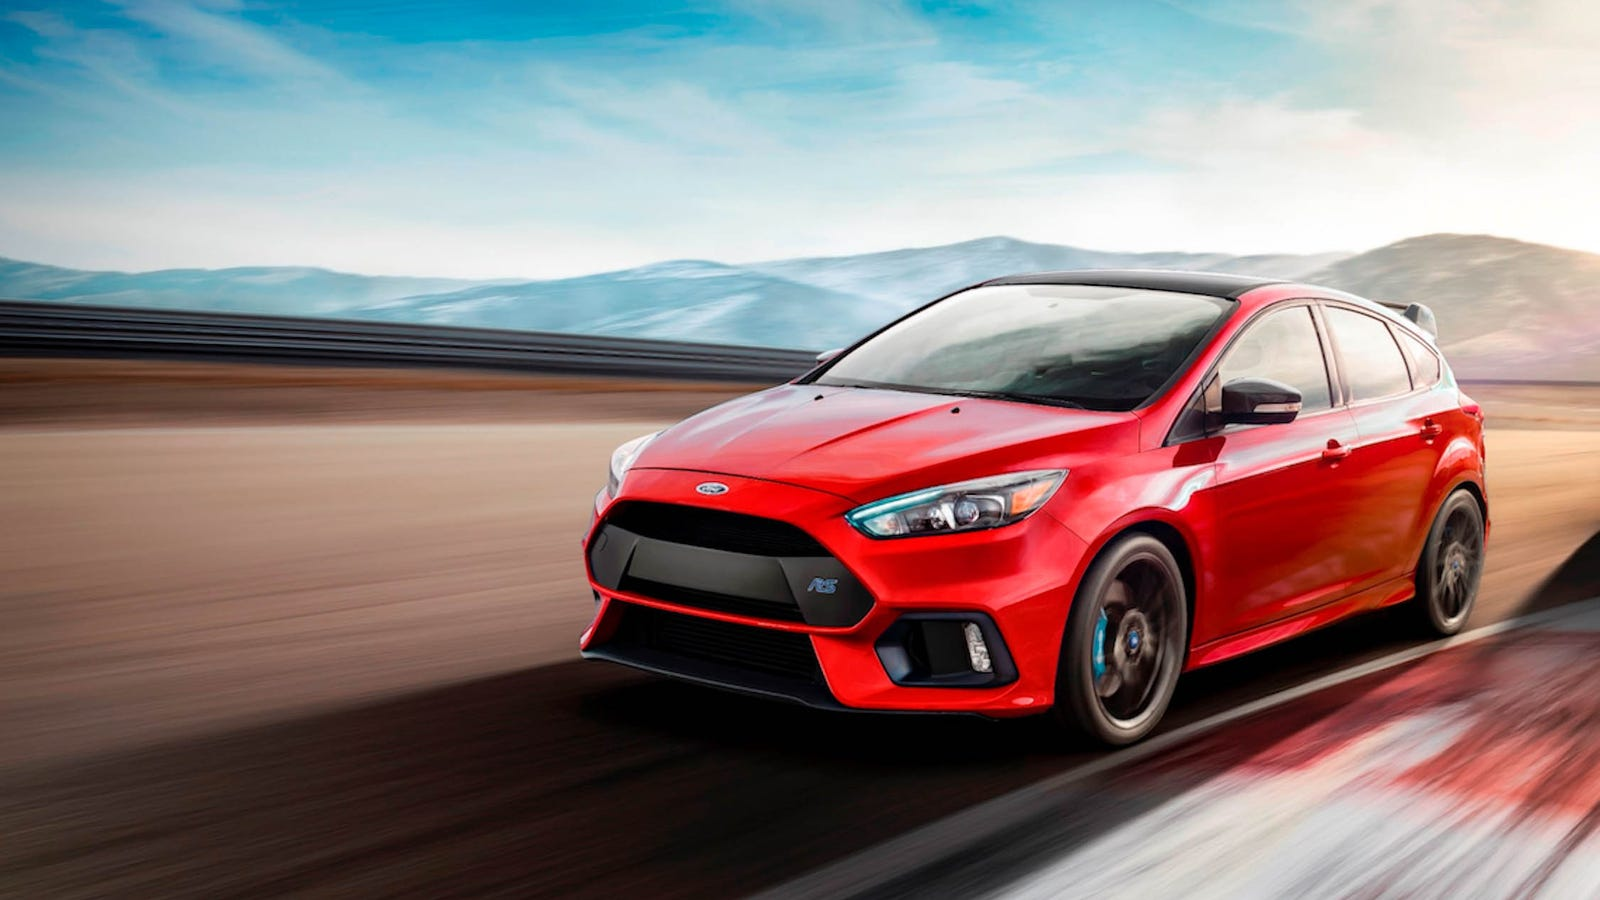 The 2018 Ford Focus RS Costs $5,000 More But Here's Why It's ...